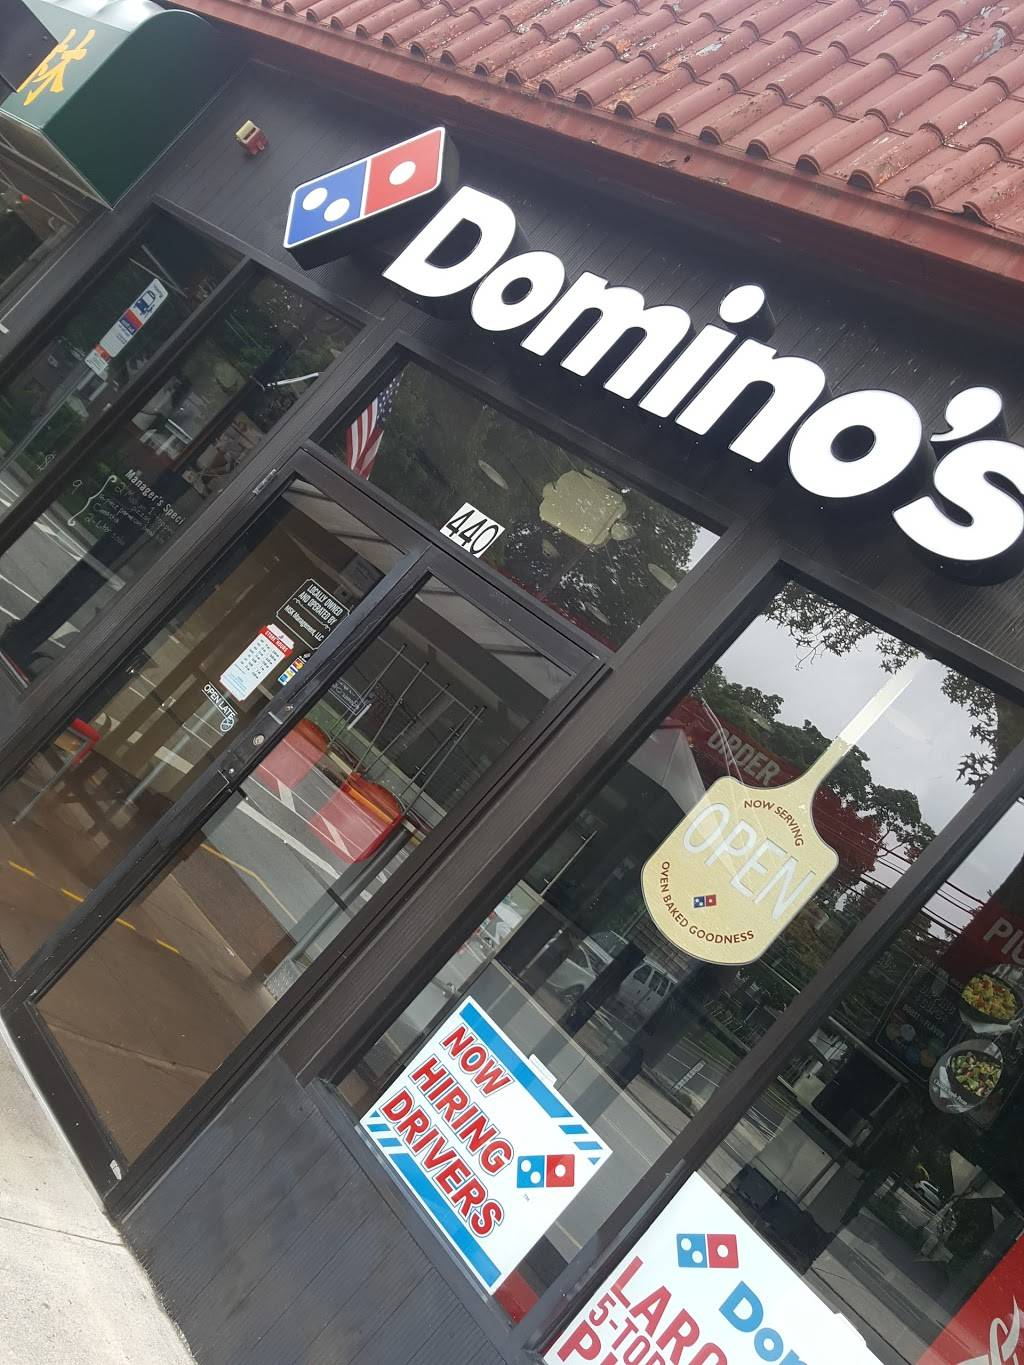 Dominos Pizza   meal delivery   440 Broad Ave, Leonia, NJ 07605, USA   2019449199 OR +1 201-944-9199